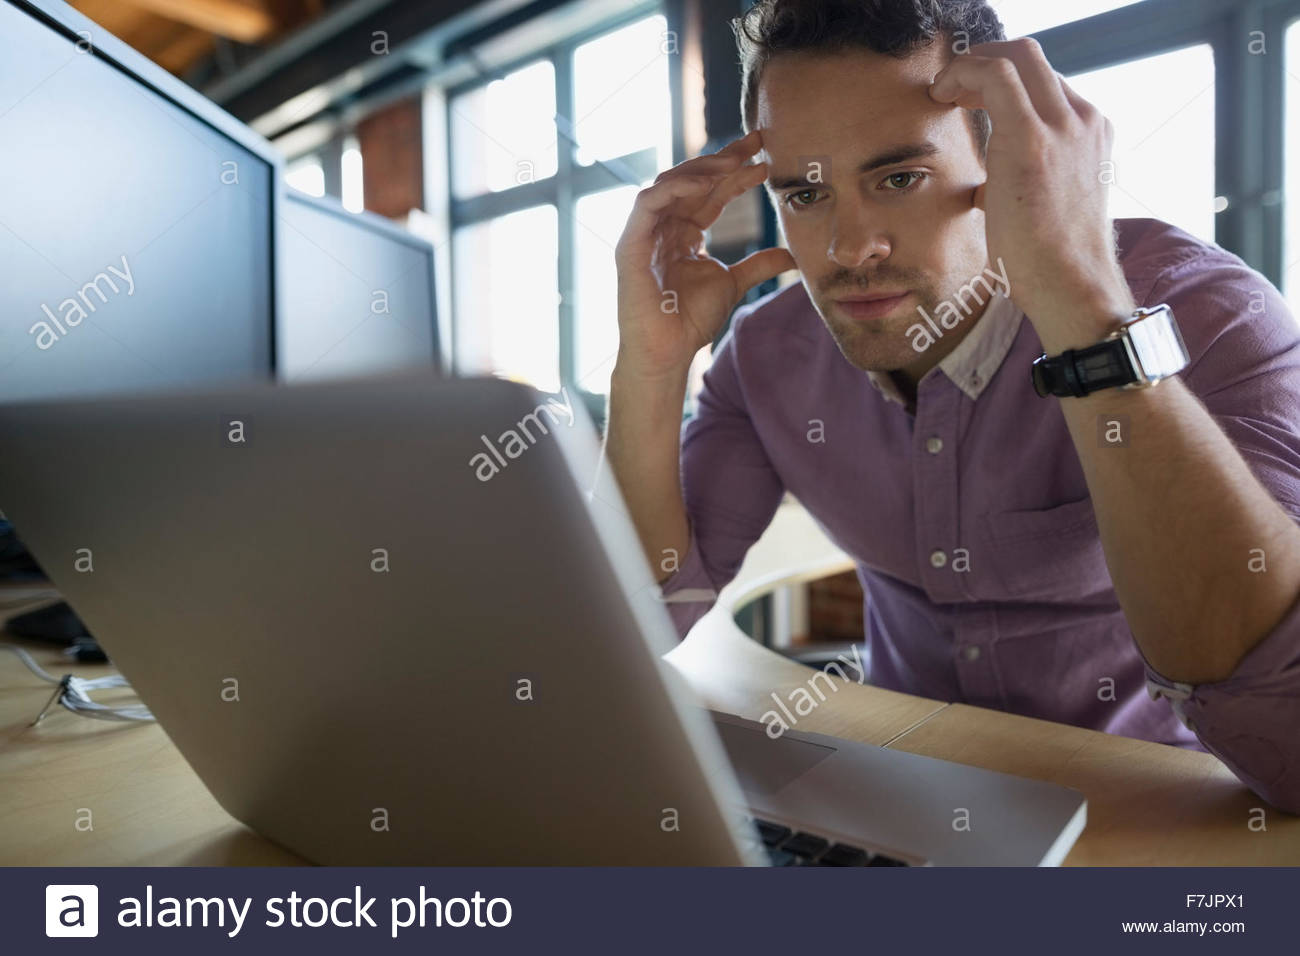 Stressed businessman working at laptop in office - Stock Image